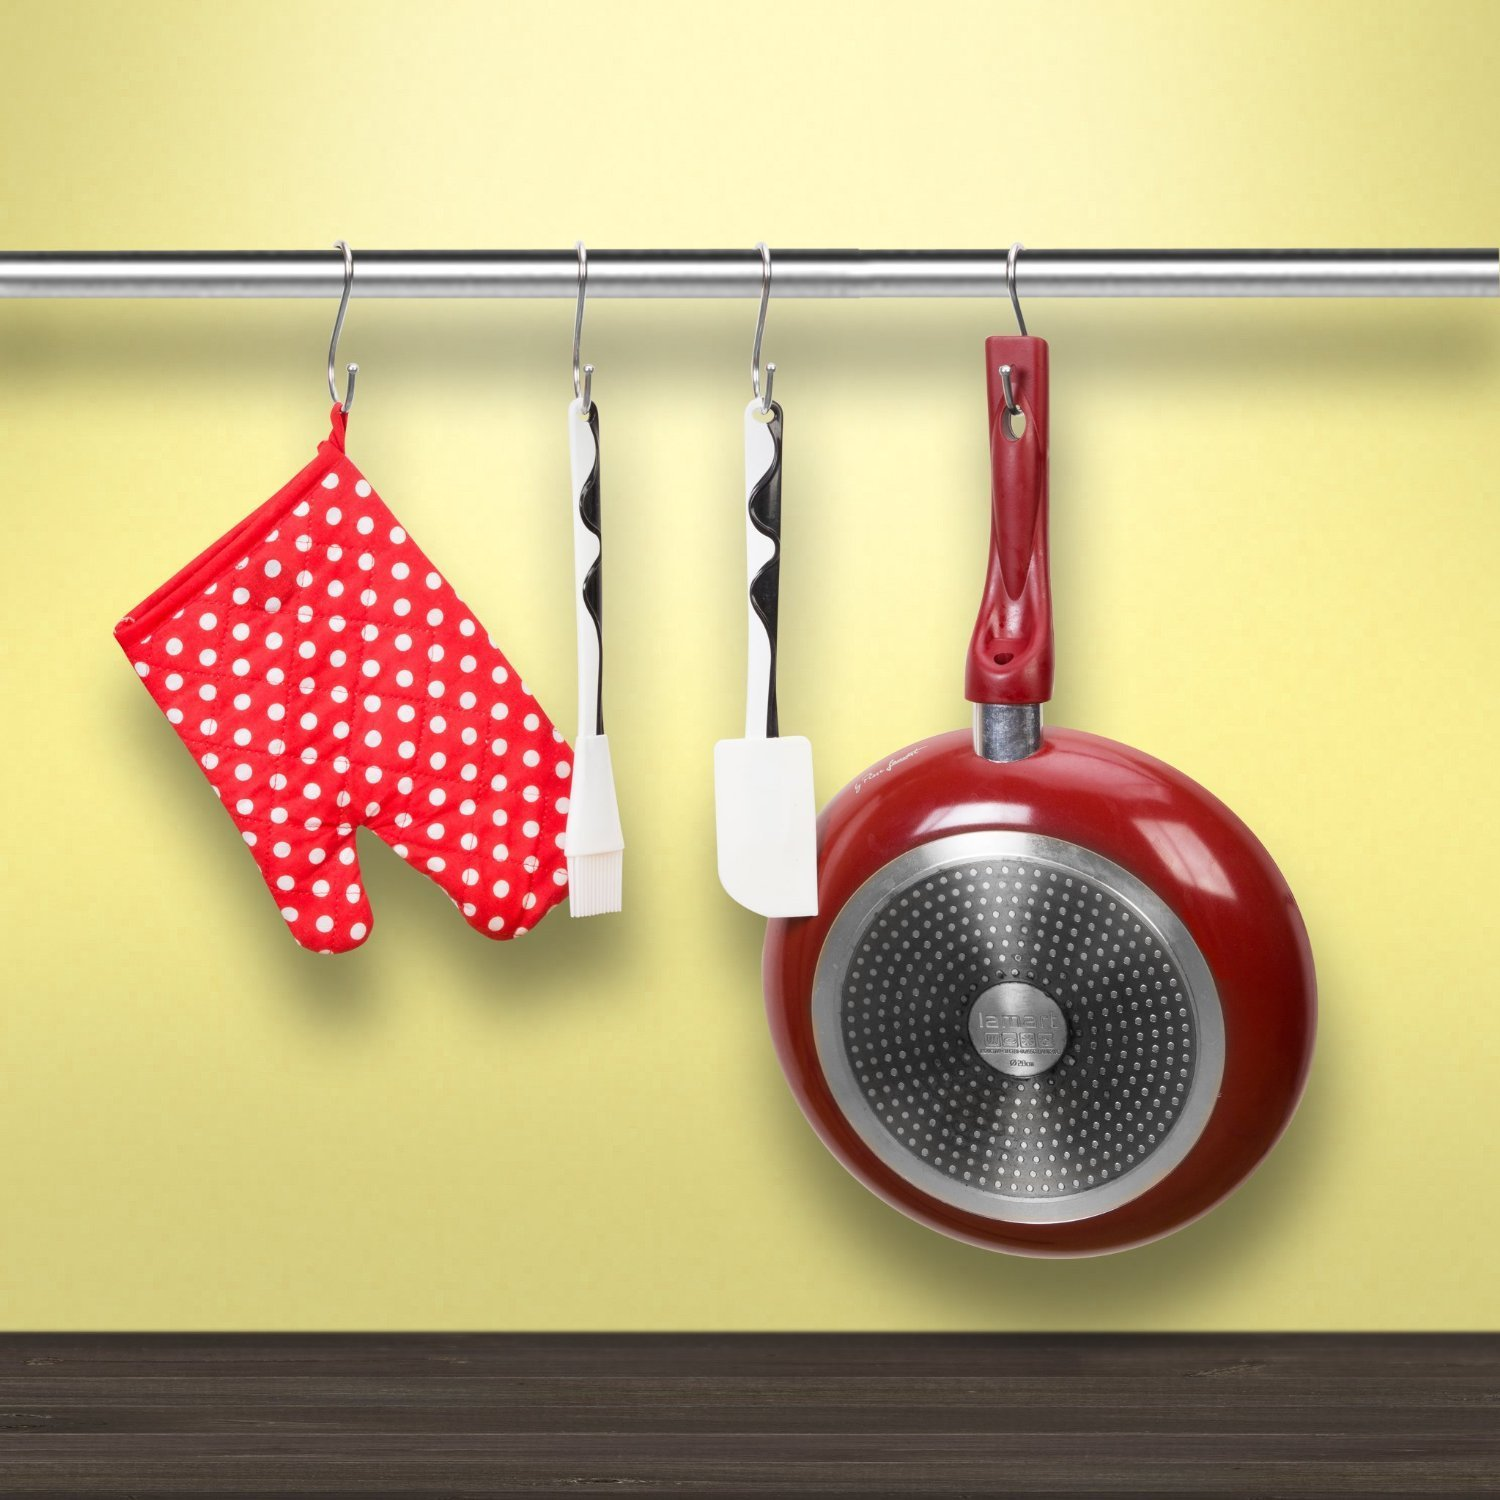 Ideal Pots Prudance Large Round S Shaped Stainless Steel Hanging Hooks Set 10 Hooks Perfect Clothing HPT6805 Pans Spoons /& Other Kitchen Essentials